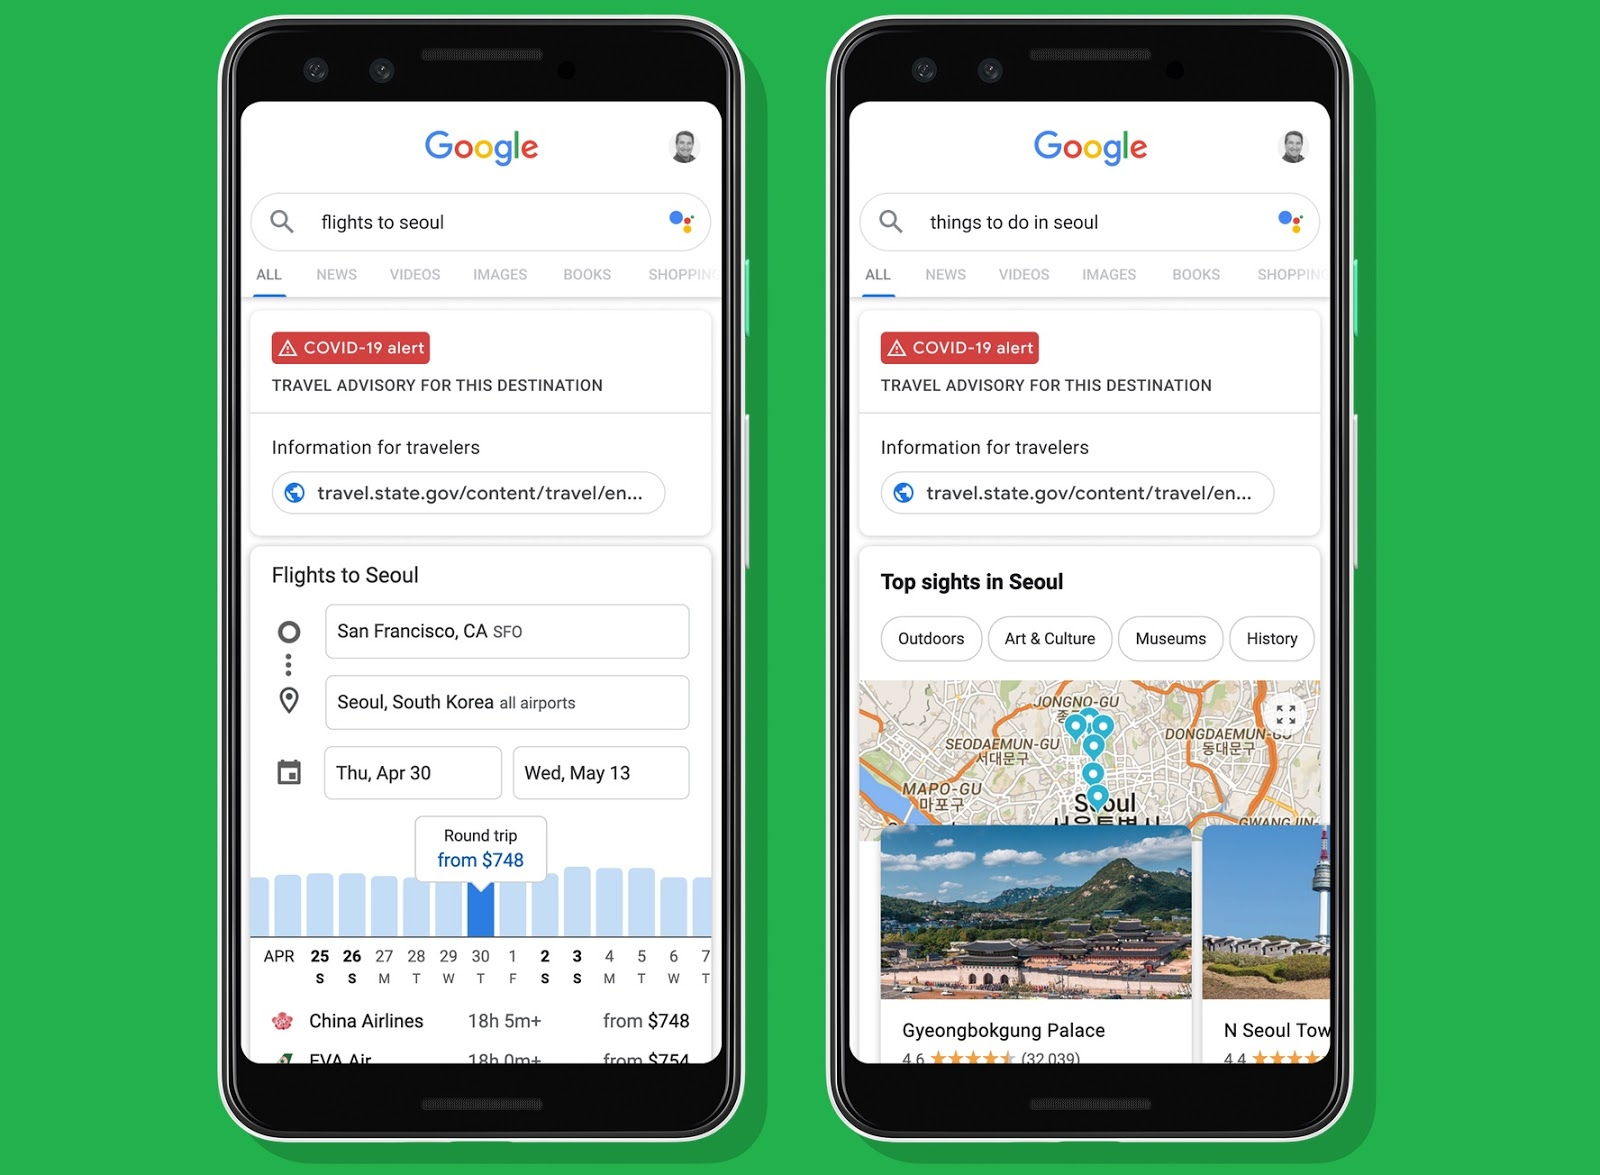 Stay updated on travel advisories and airline policies with Google